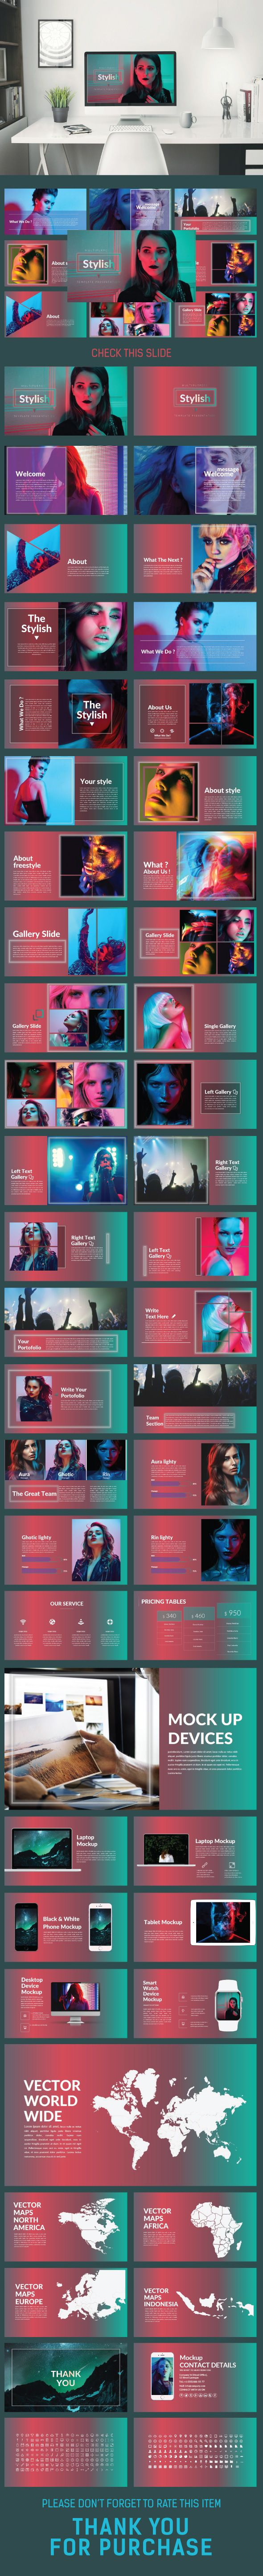 Stylish Keynote Template - #Creative #Keynote #Templates Download here: https://graphicriver.net/item/stylish-keynote-template/19736540?ref=alena994